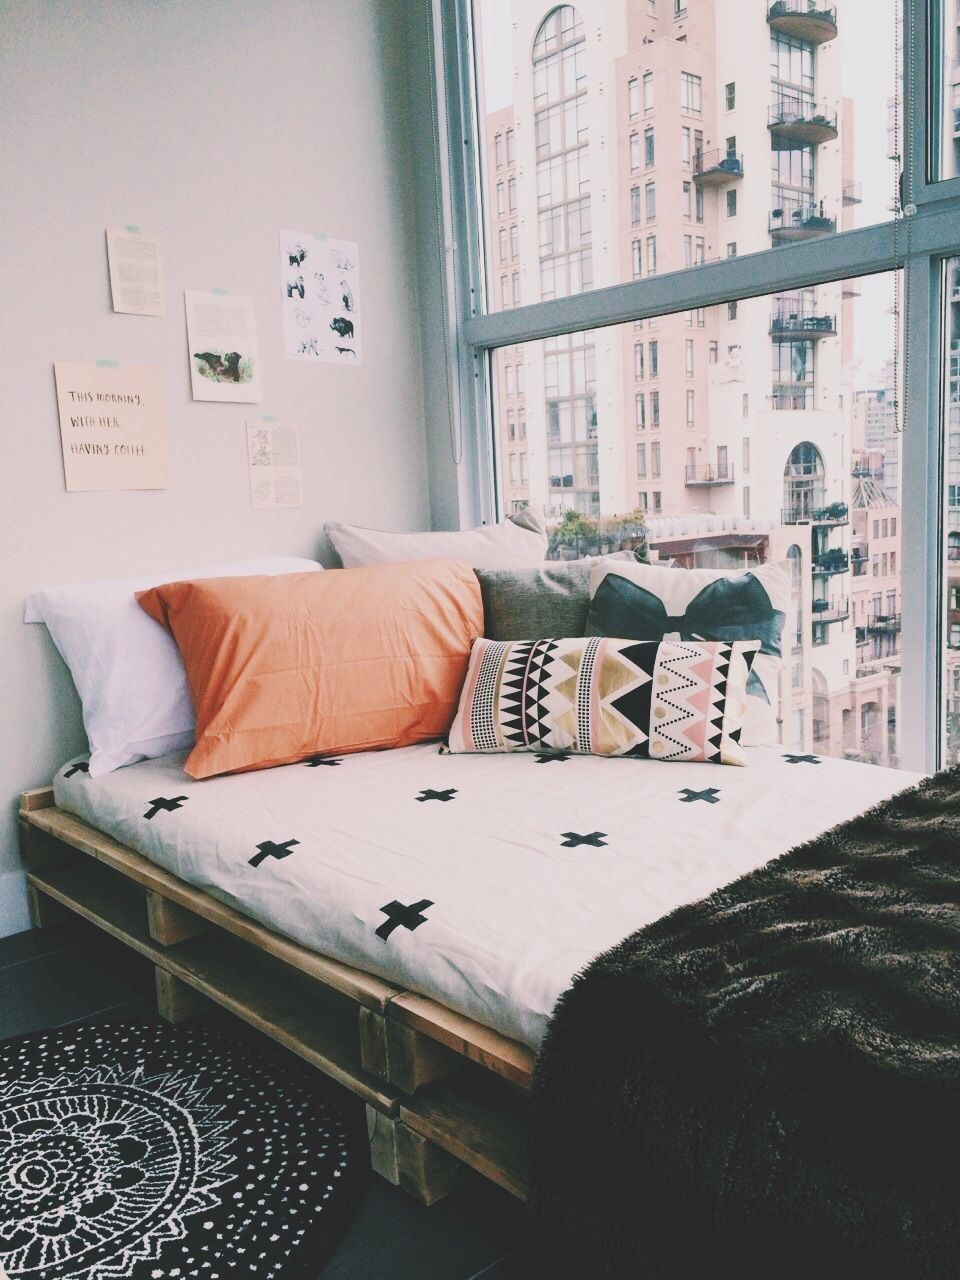 Create A Cozy Place In A Window To Relax With Just A Few Pillows And A